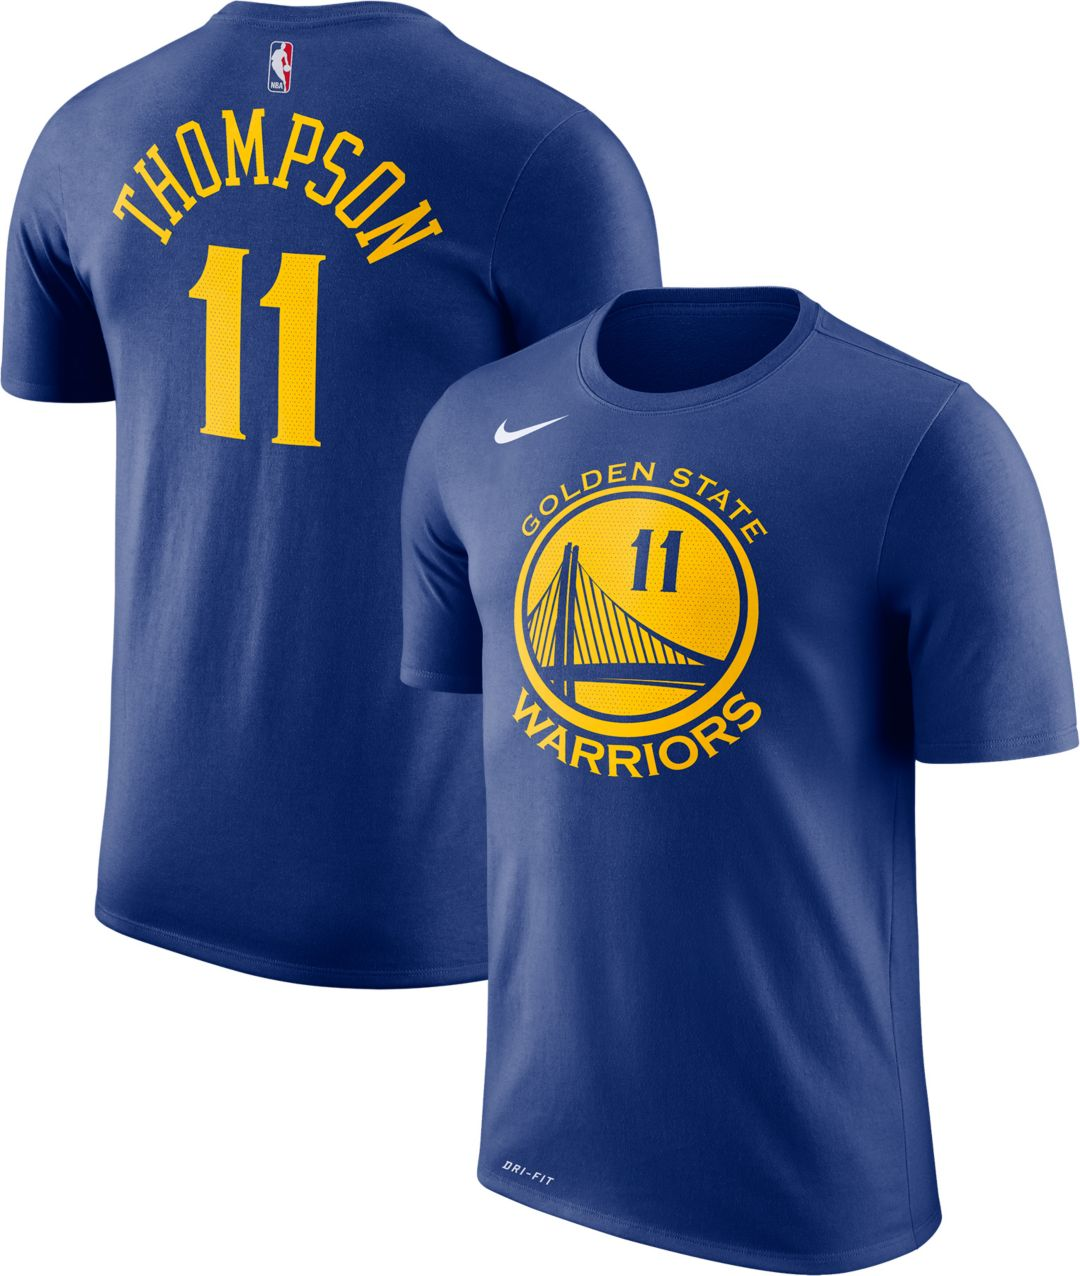 separation shoes eb62b f8f39 Nike Youth Golden State Warriors Klay Thompson #11 Dri-FIT Royal T-Shirt